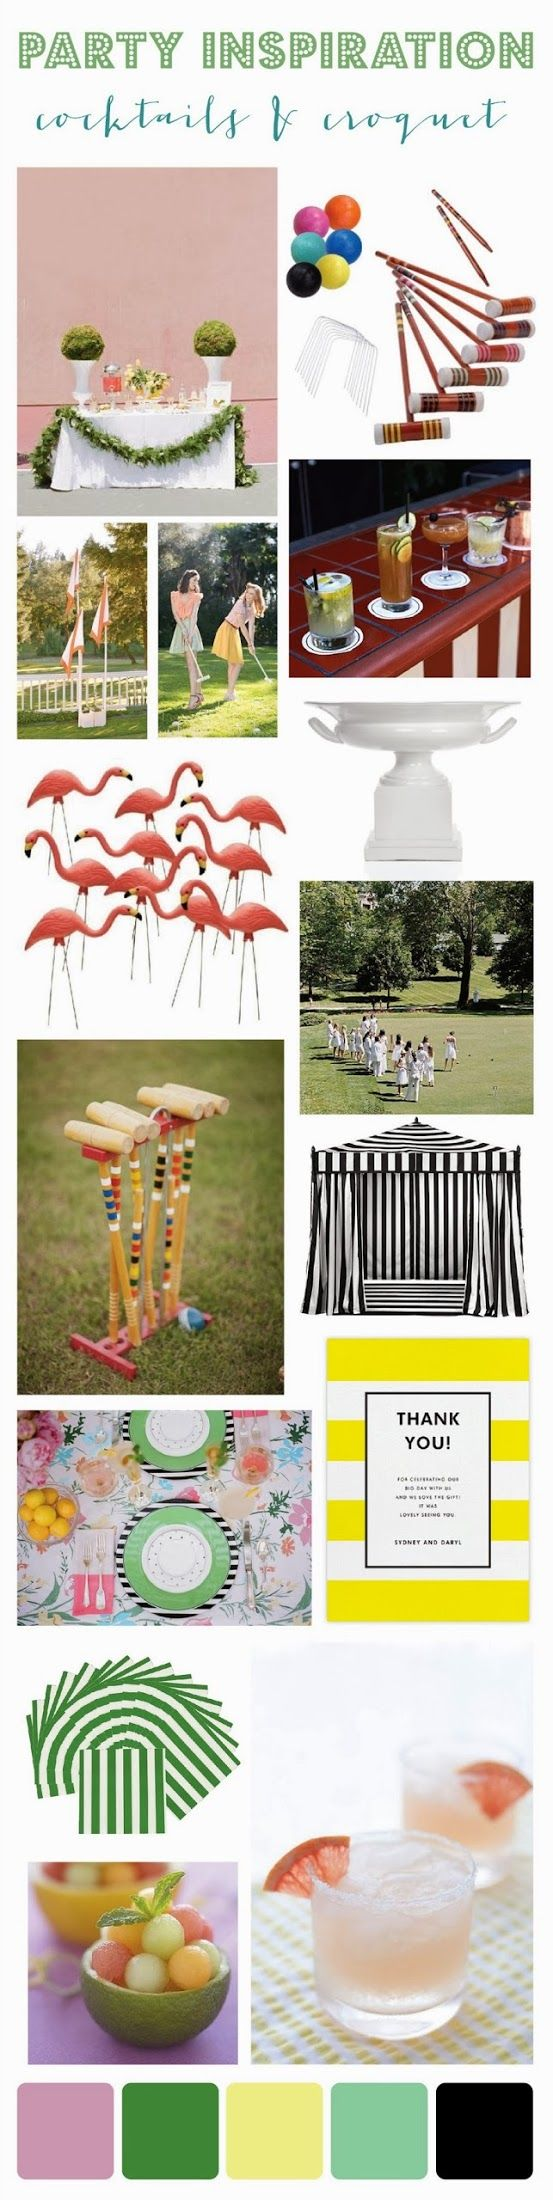 {party inspiration: cocktails & croquet}